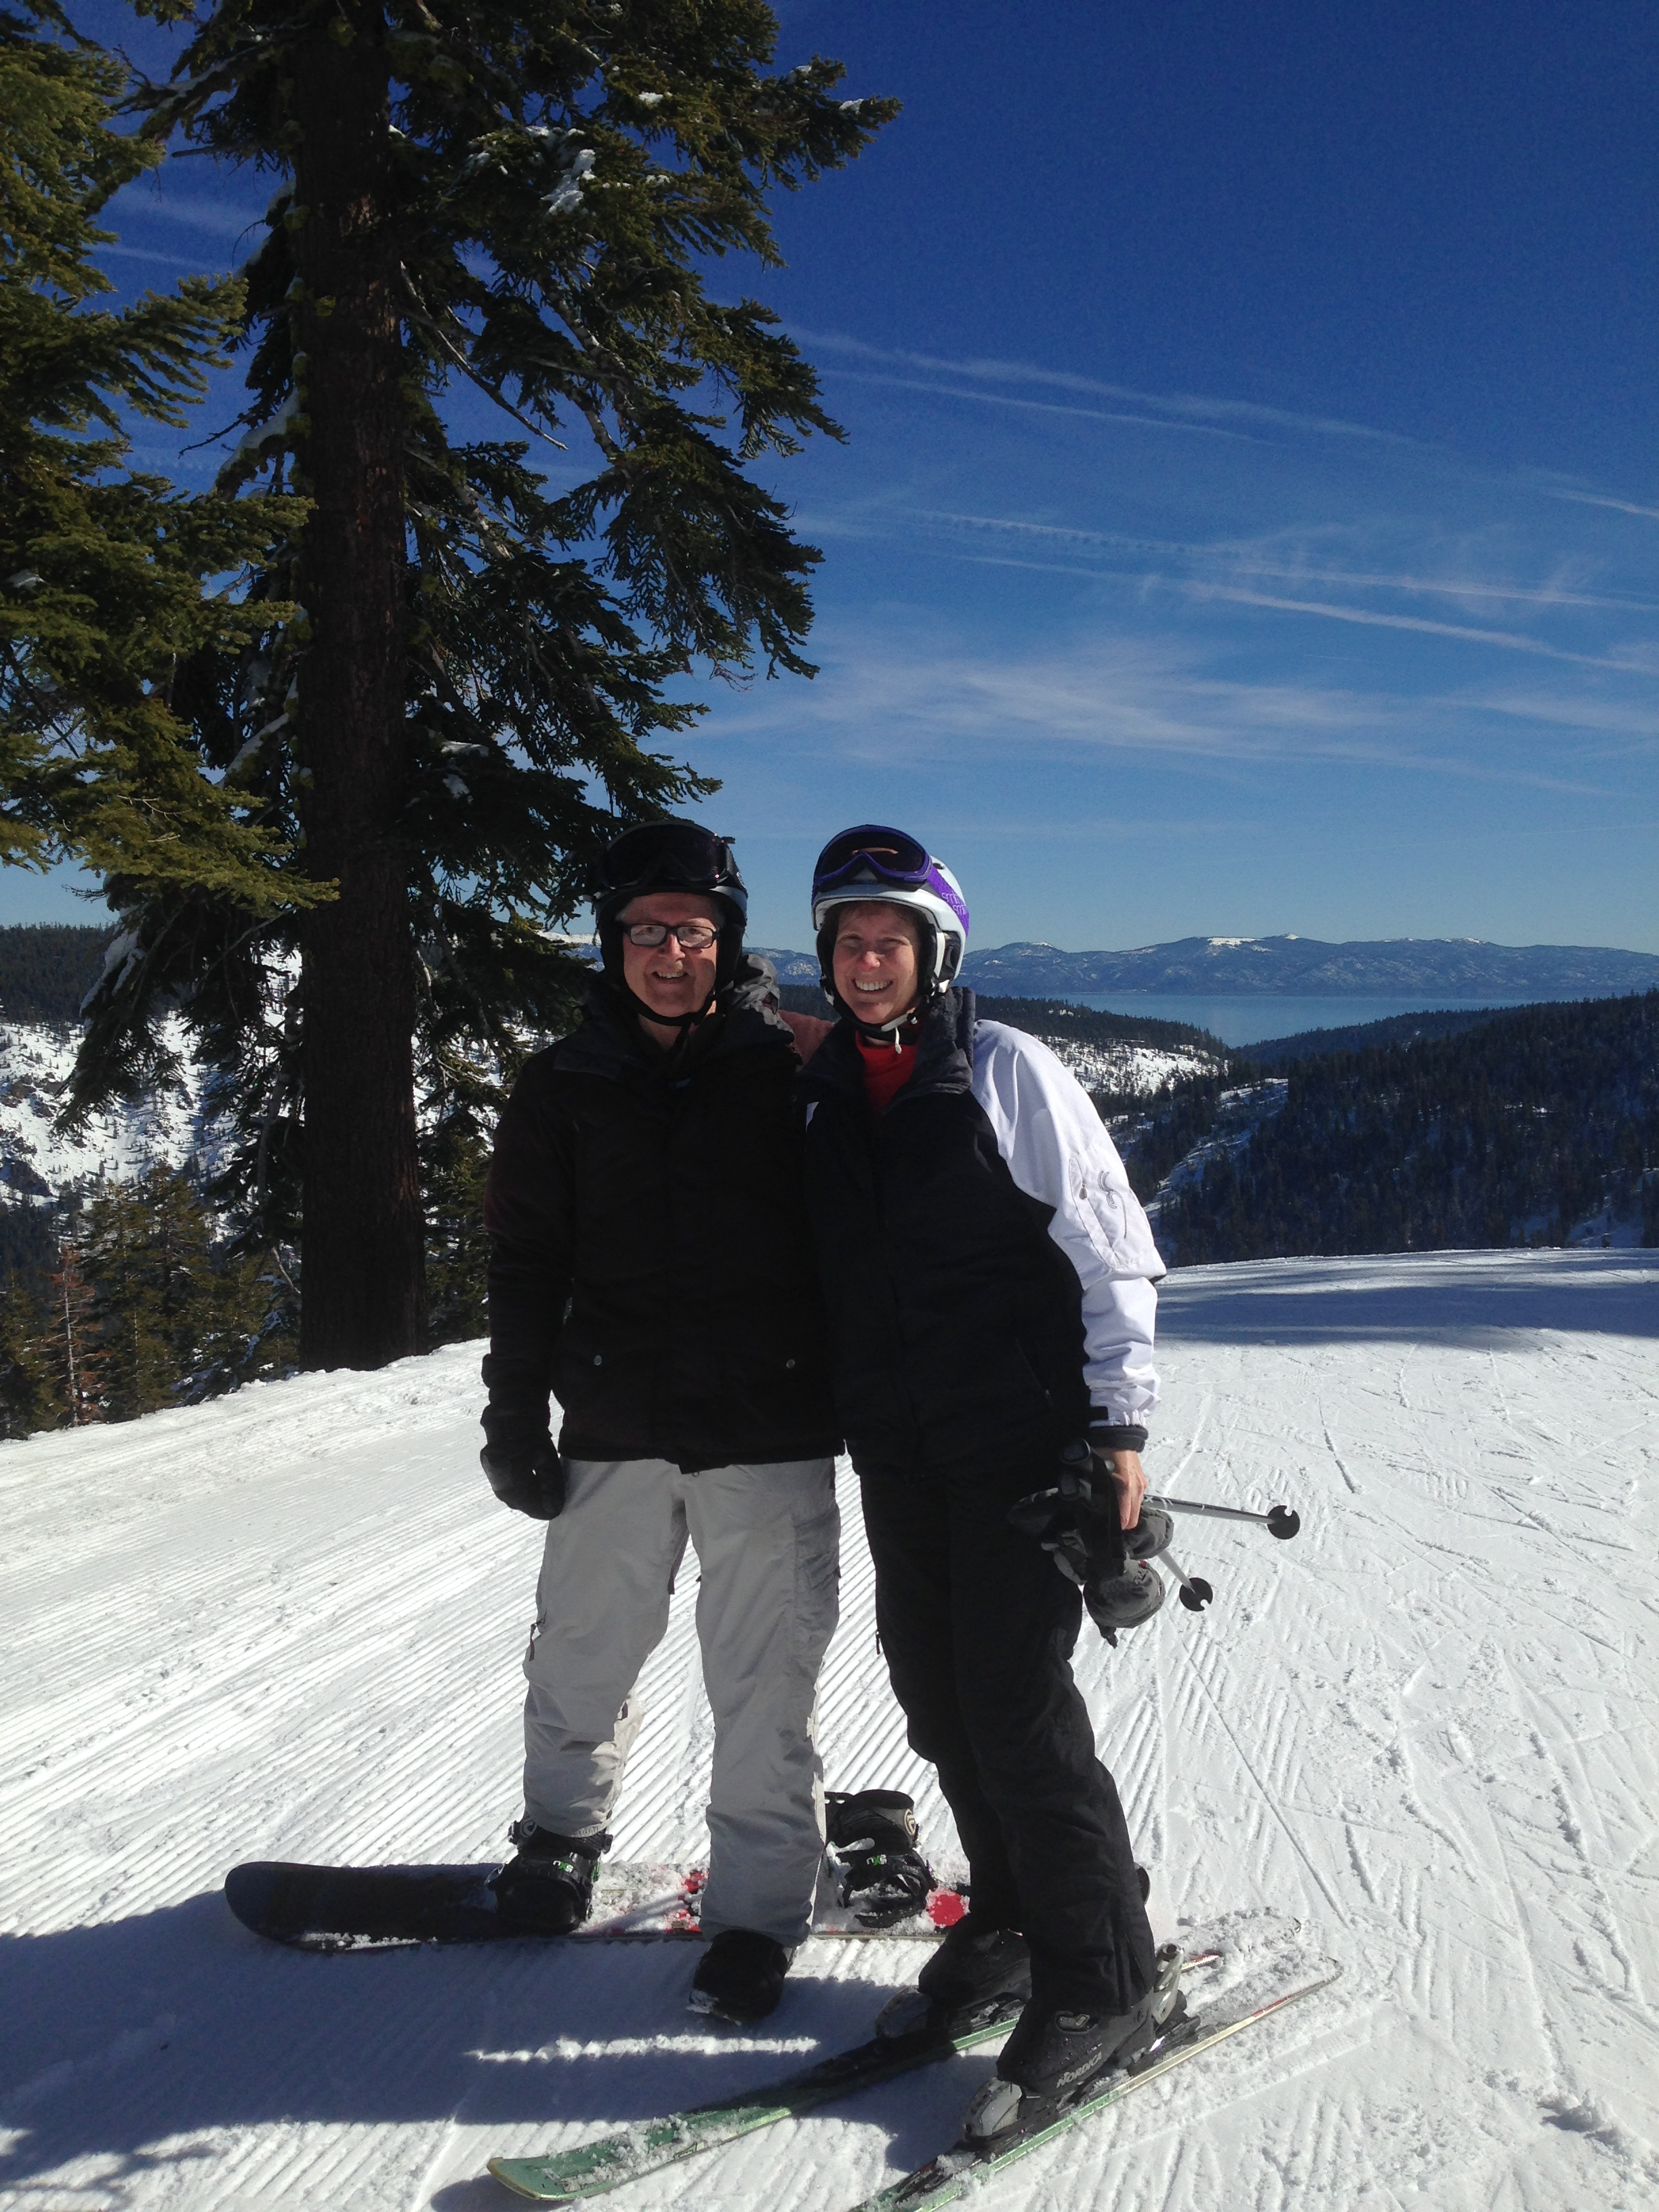 Rob and Ann Squaw Valley Jan 2016.JPG